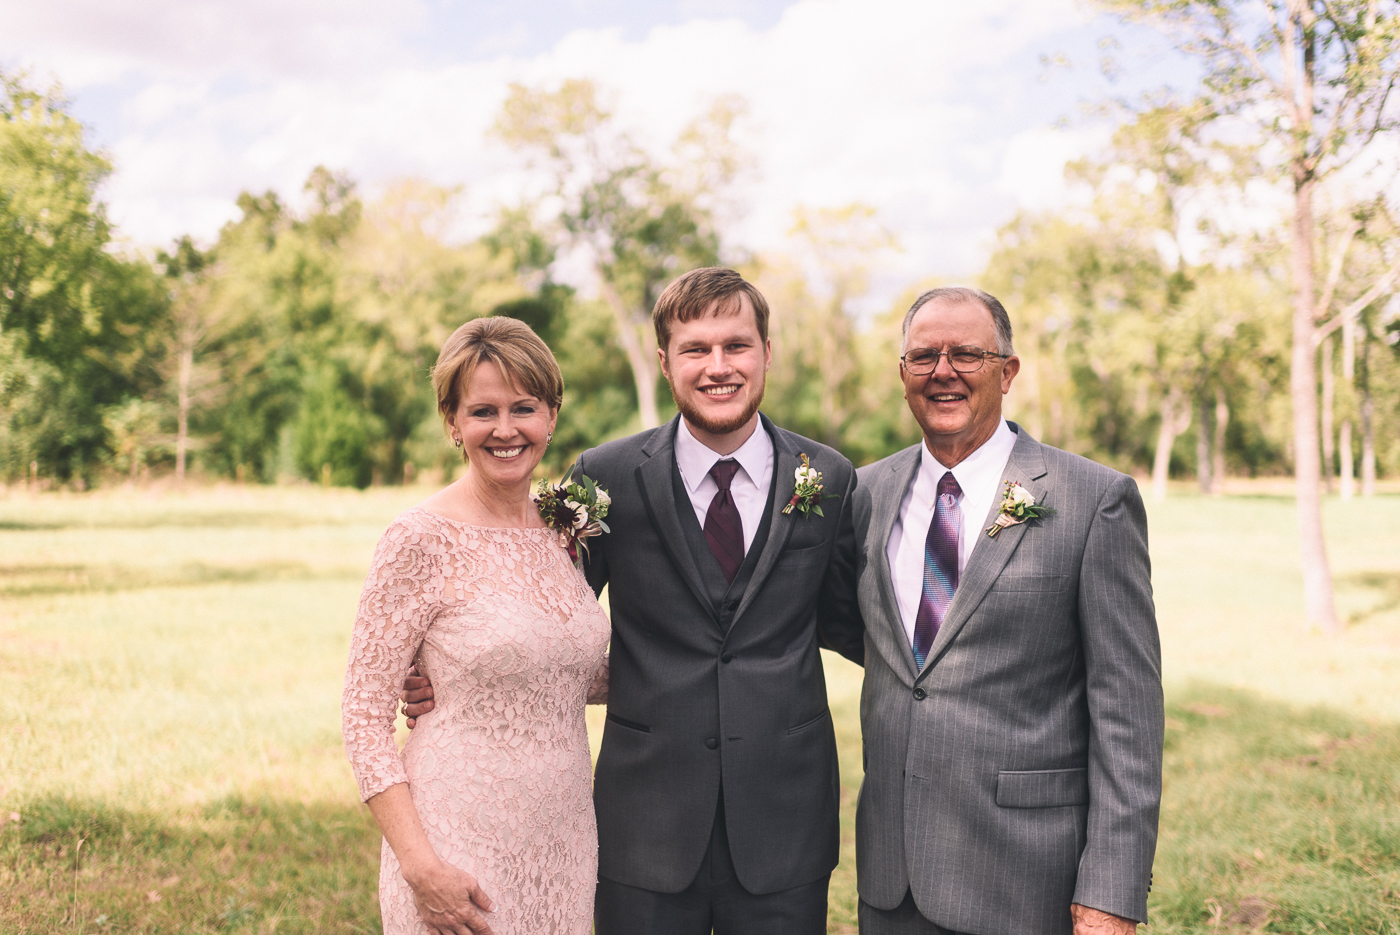 Groom's family wedding portraits mom and dad suit smile